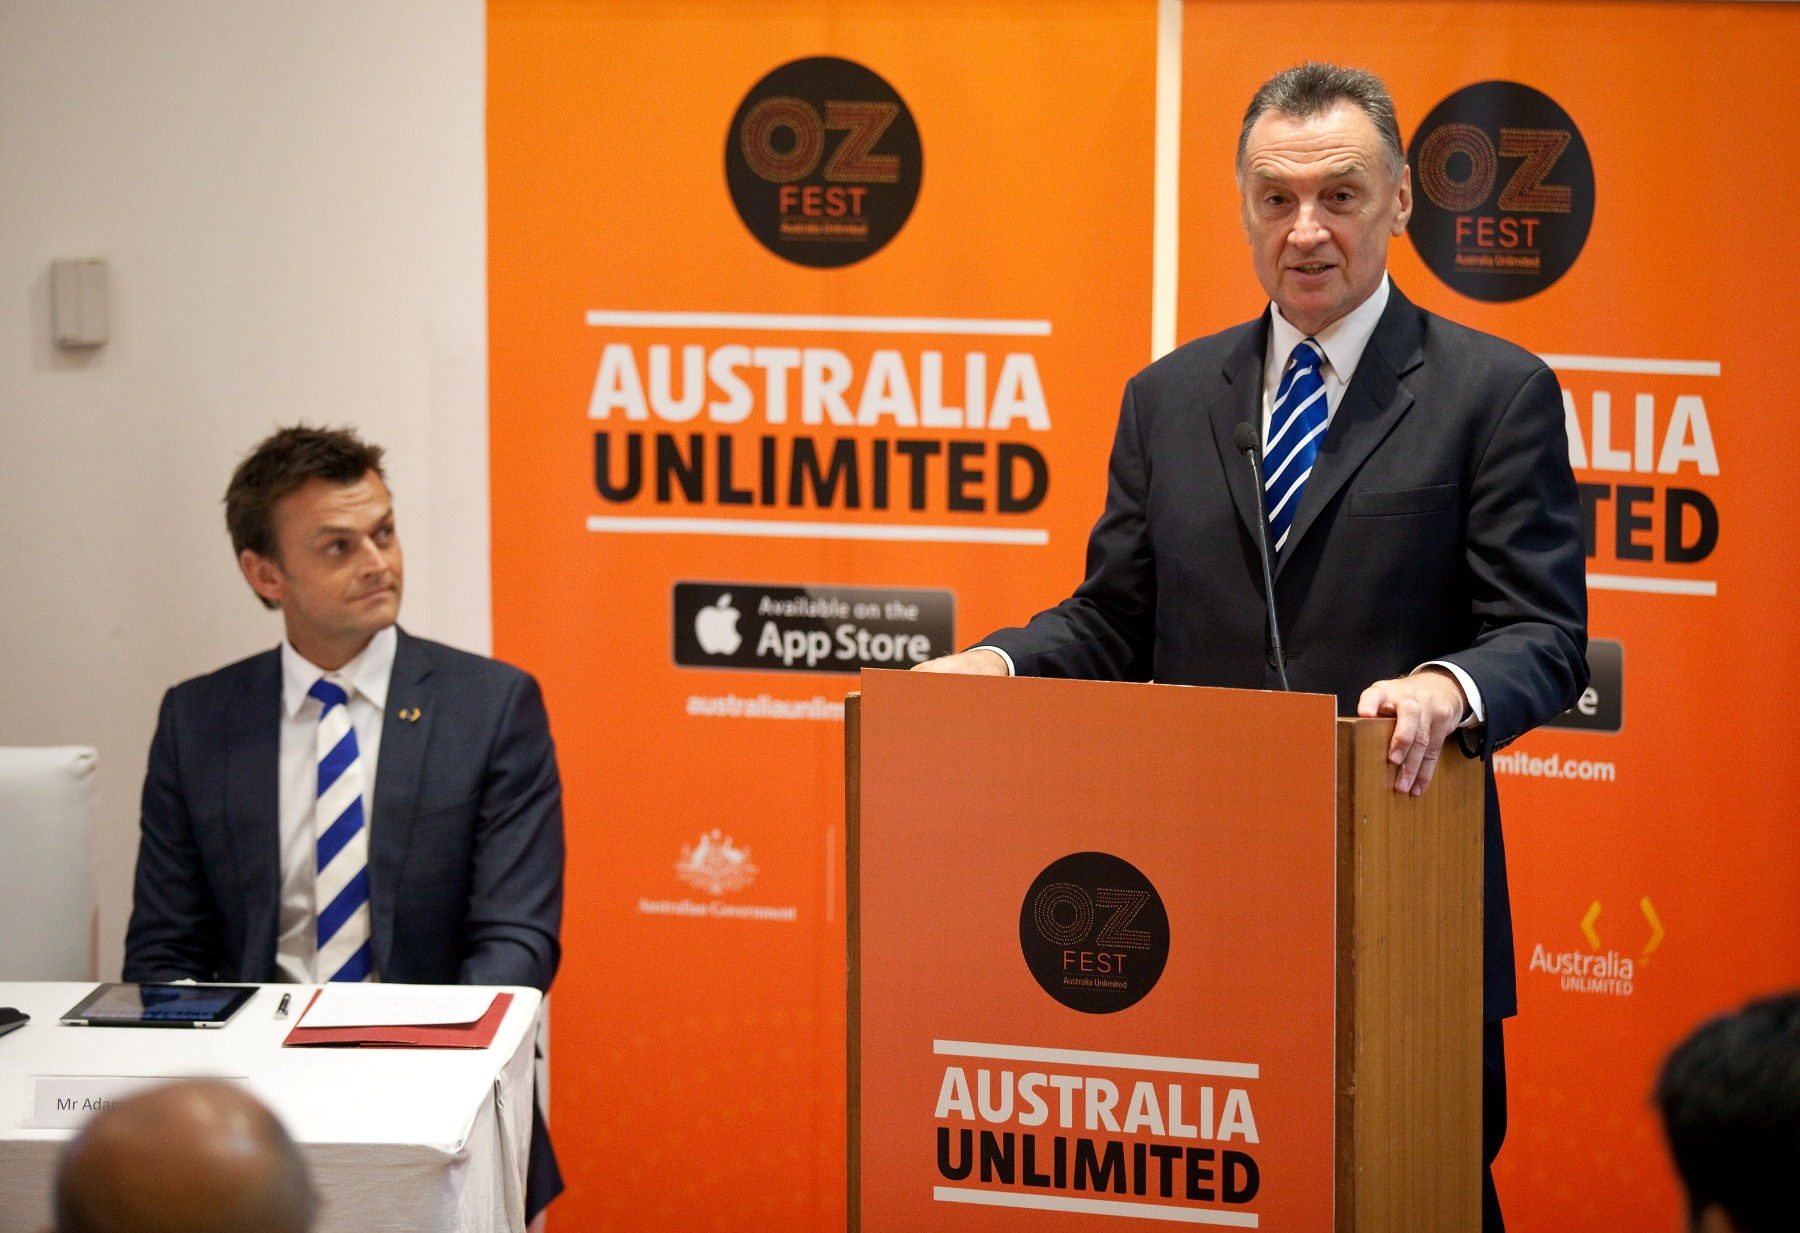 Adam Gilchrist & Hon Dr Craig Emerson at the launch of Australia Unlimited 2